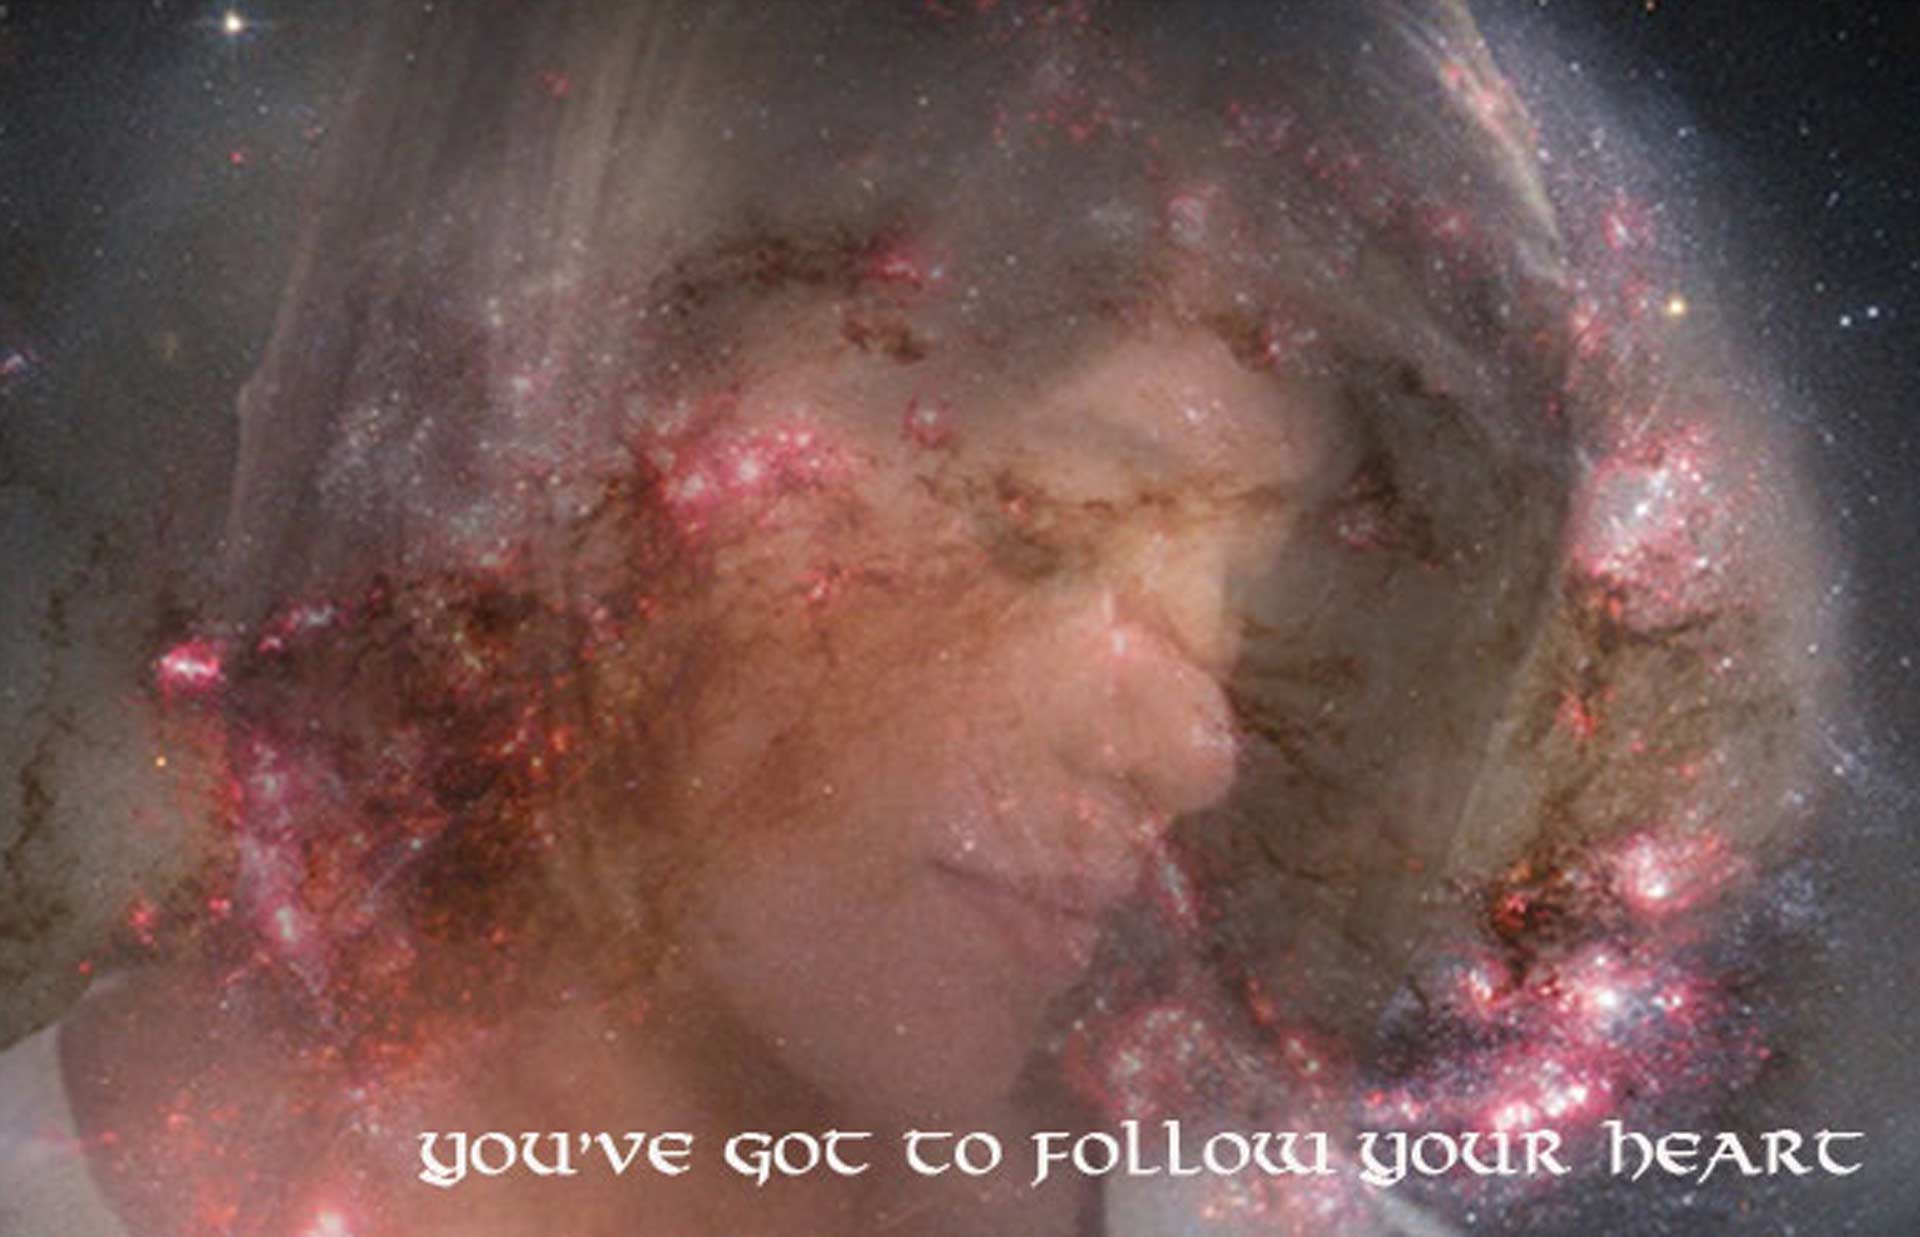 Catherine looking pensive, the Antennae nebula in the background. Text reads: You've got to follow your heart